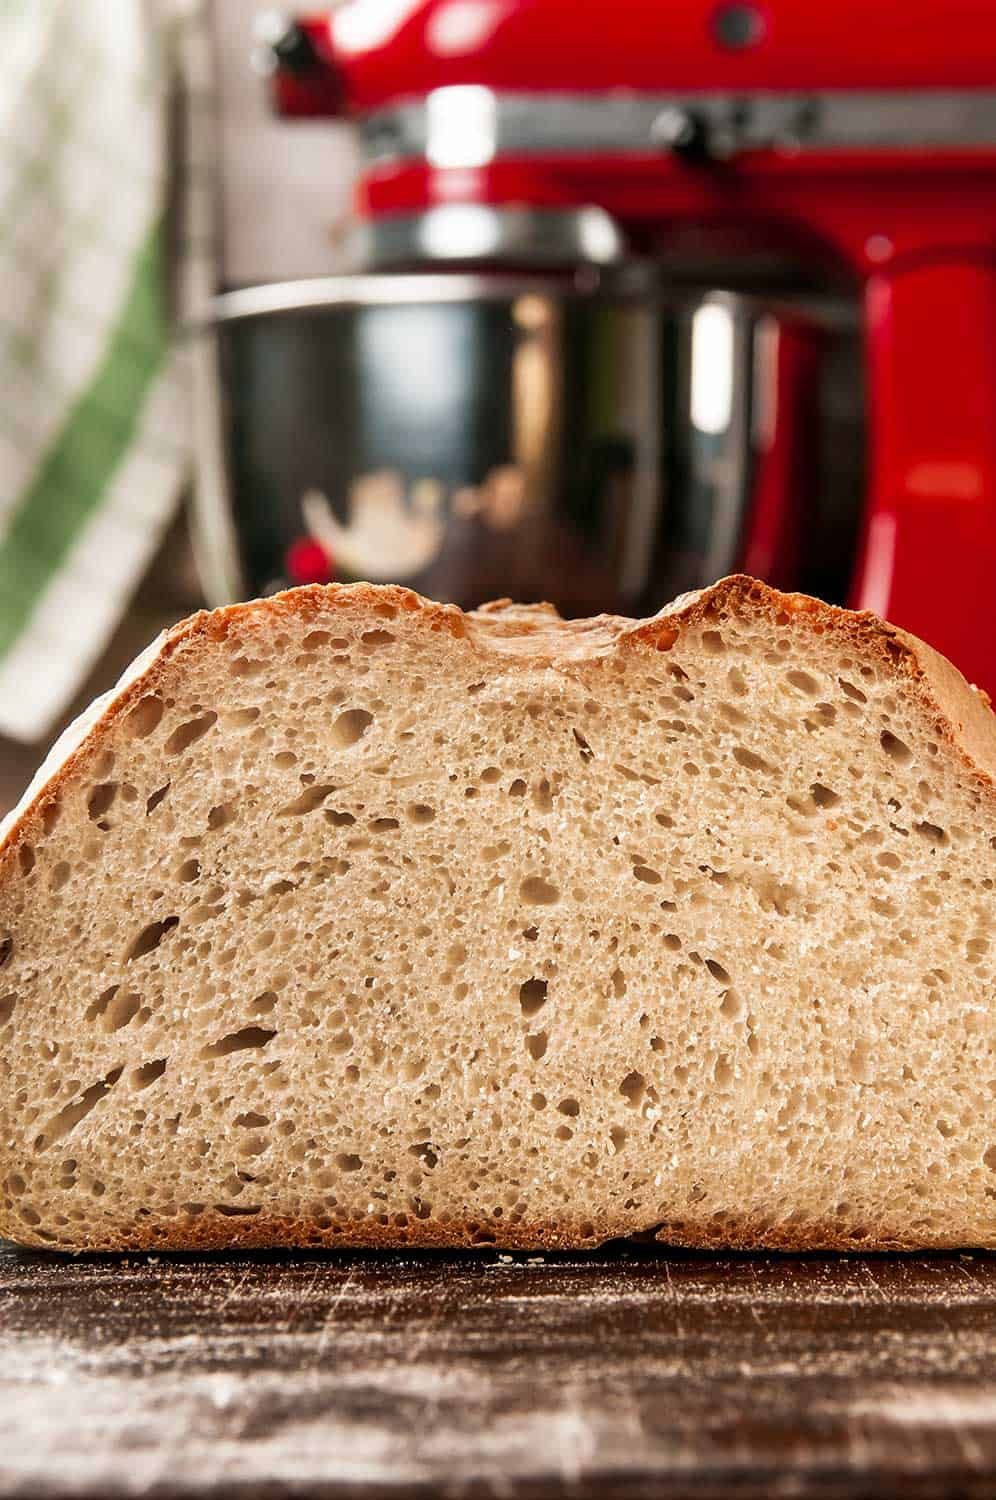 Cross section of home made bread on floured surface and stand mixer on the background